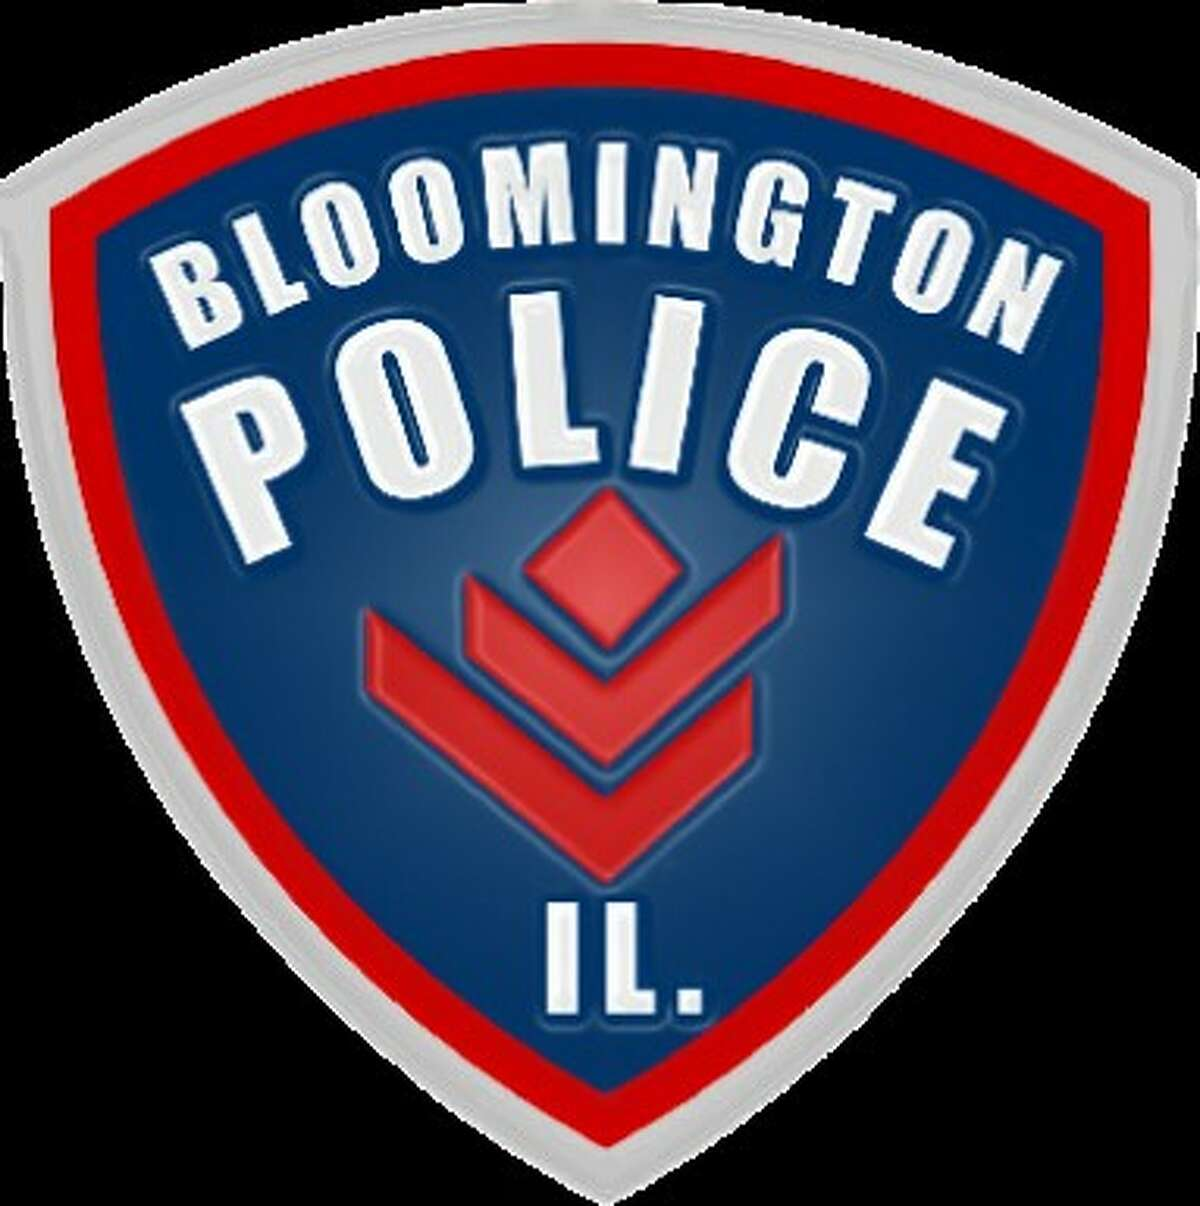 FILE - The Bloomington Police Department logo